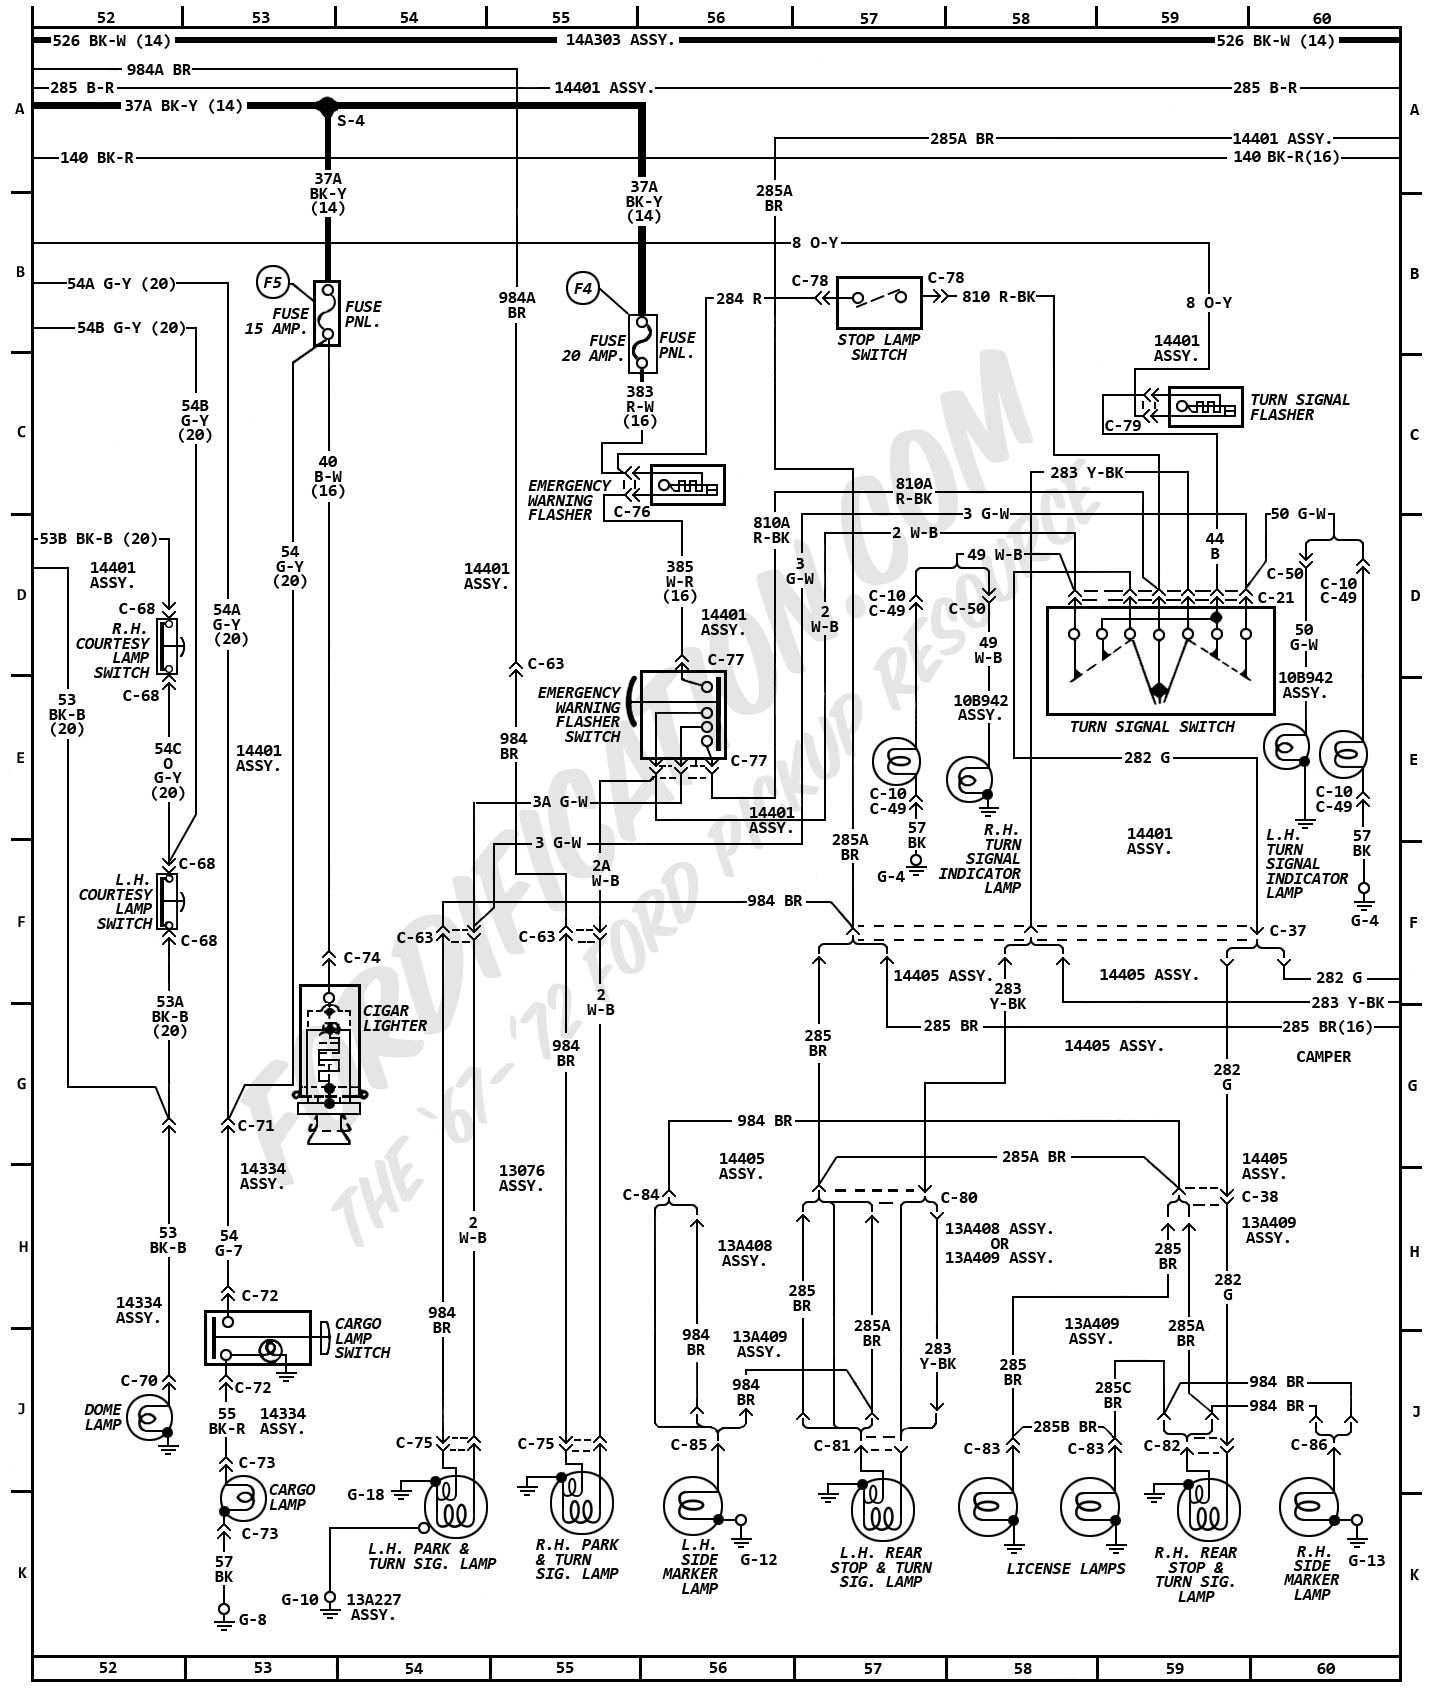 ford f53 ke wiring diagram  ford  auto wiring diagram